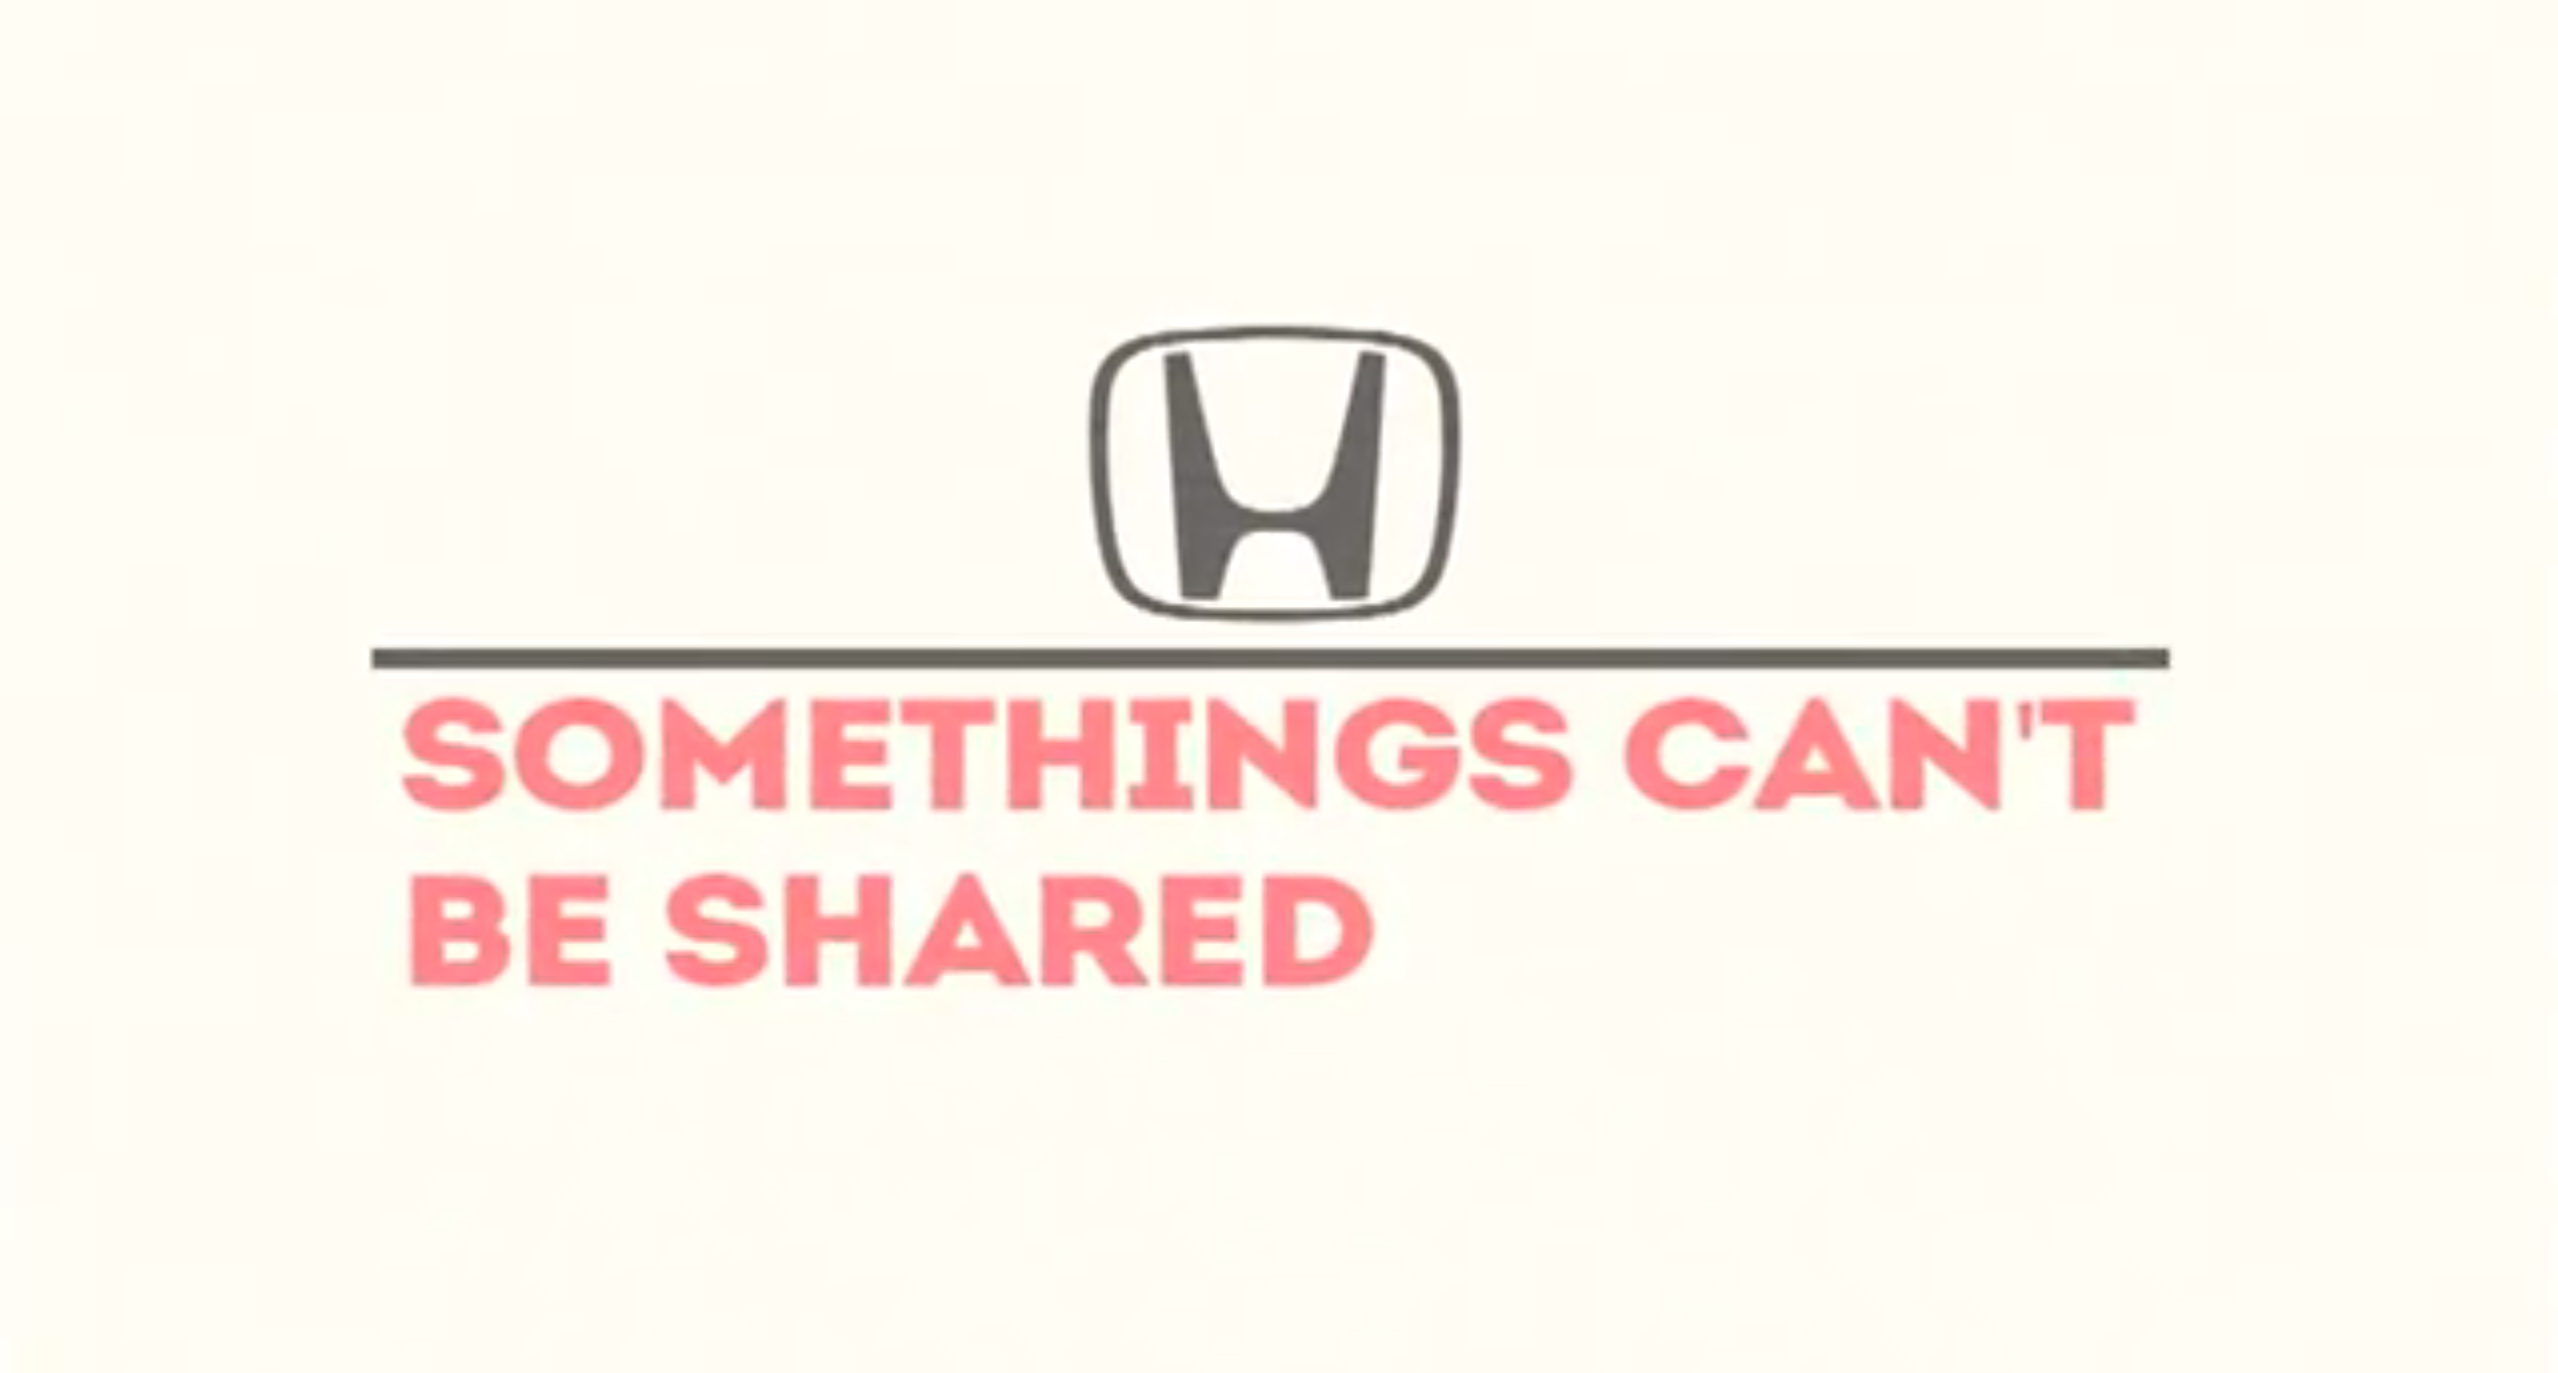 Honda - Somethings can't be shared